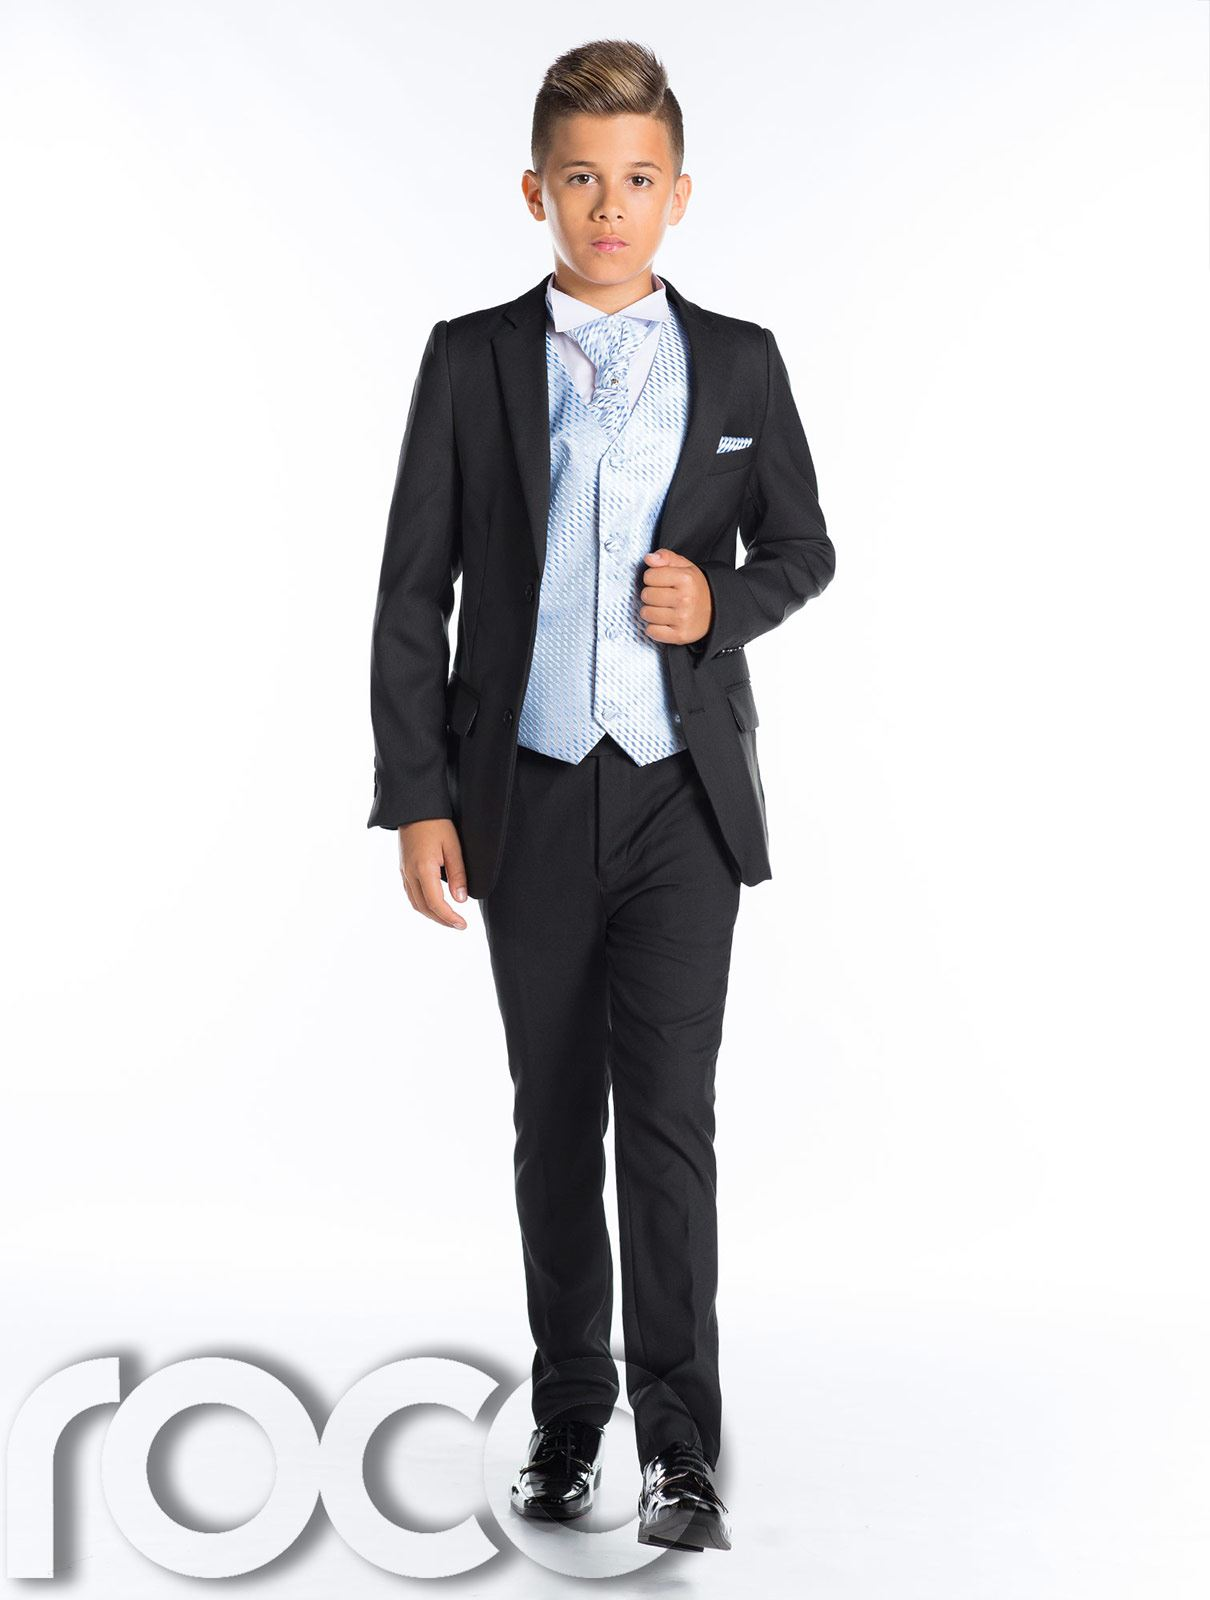 Boys Wedding Suit, Black Prom Suit, Page Boy Outfit, Boys Slim Fit ...